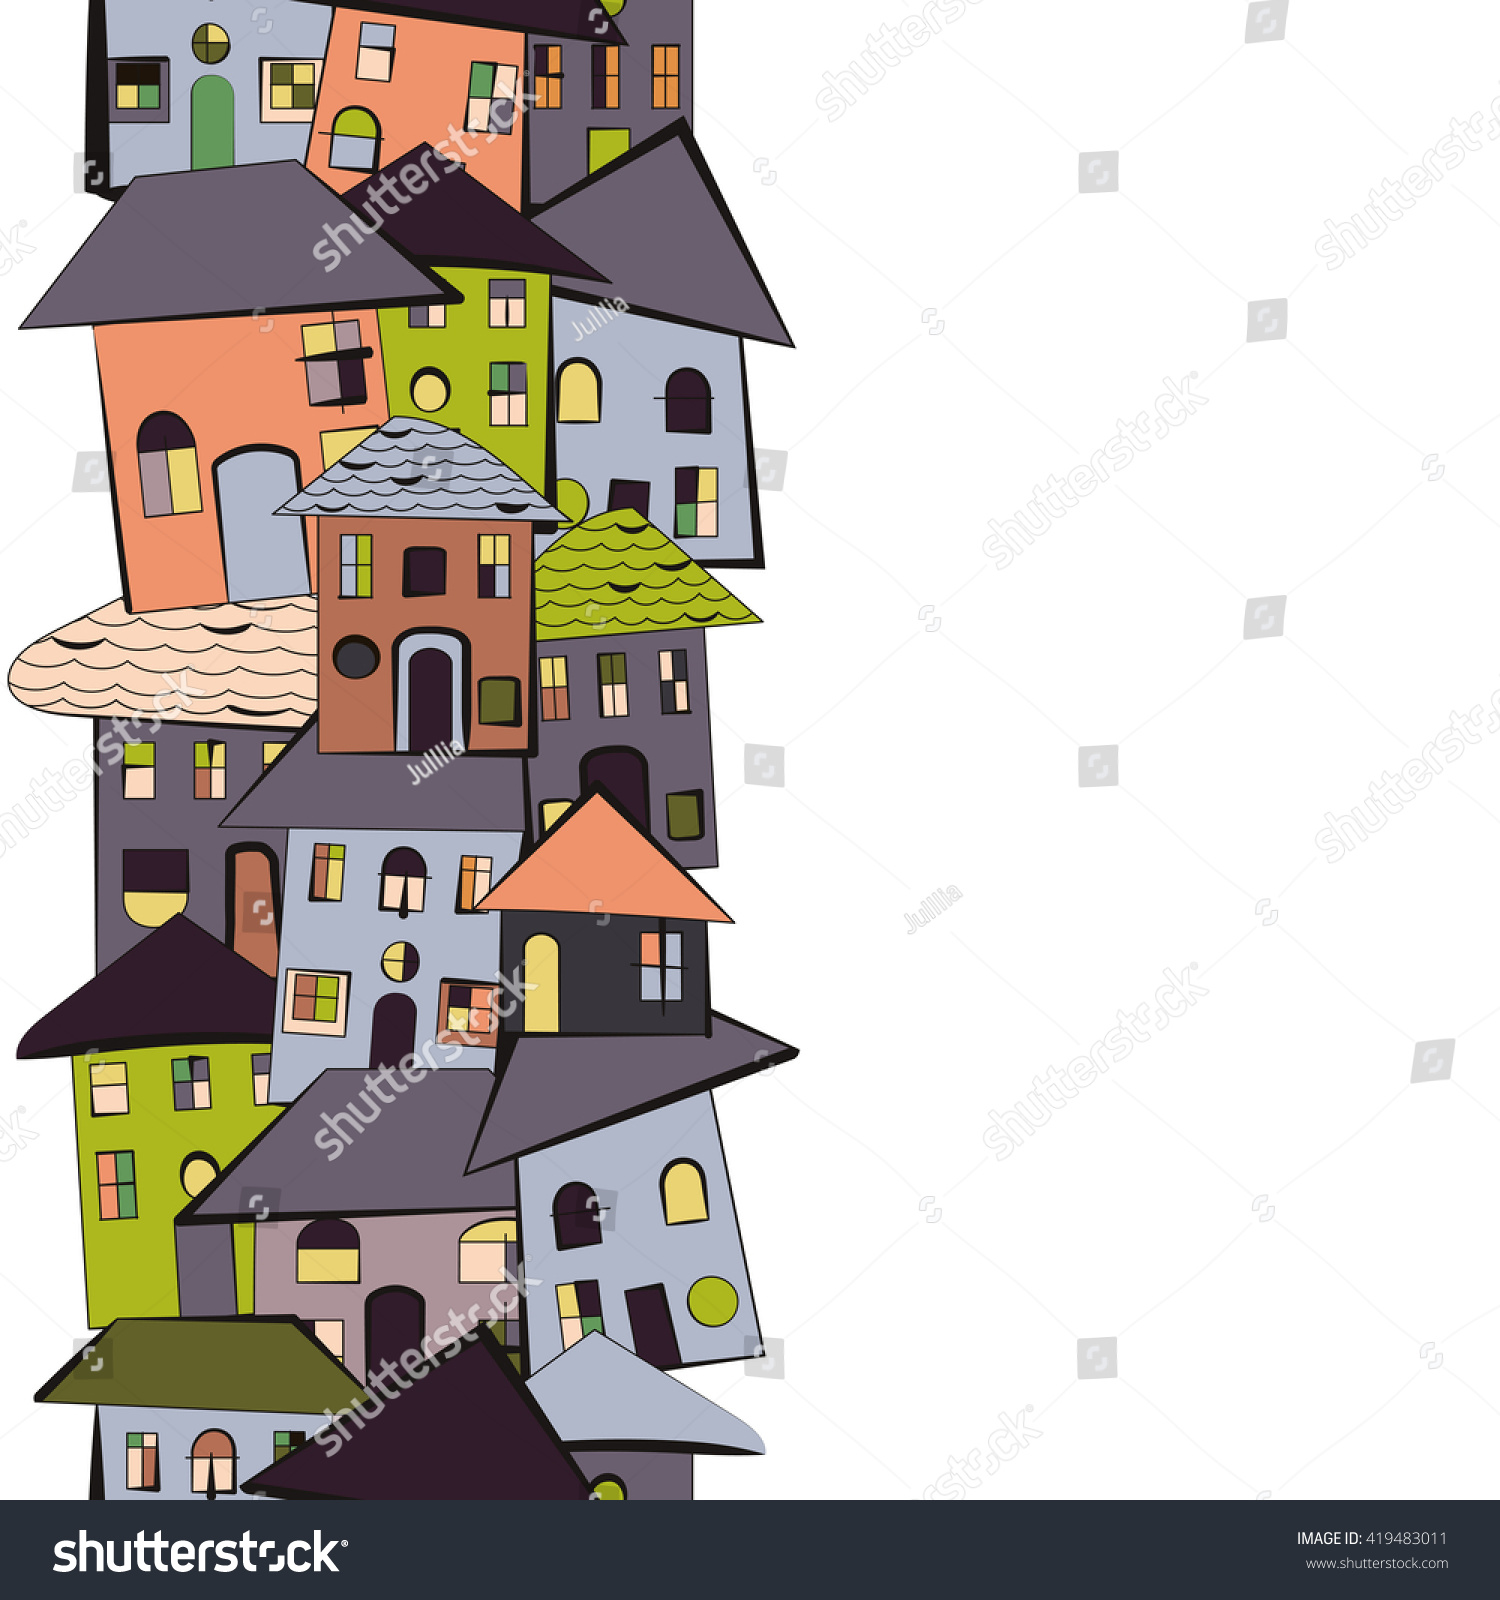 Crooked And Quirky Cartoon Tiny Houses With Roofs Windows Kids Style Drawing Vertical